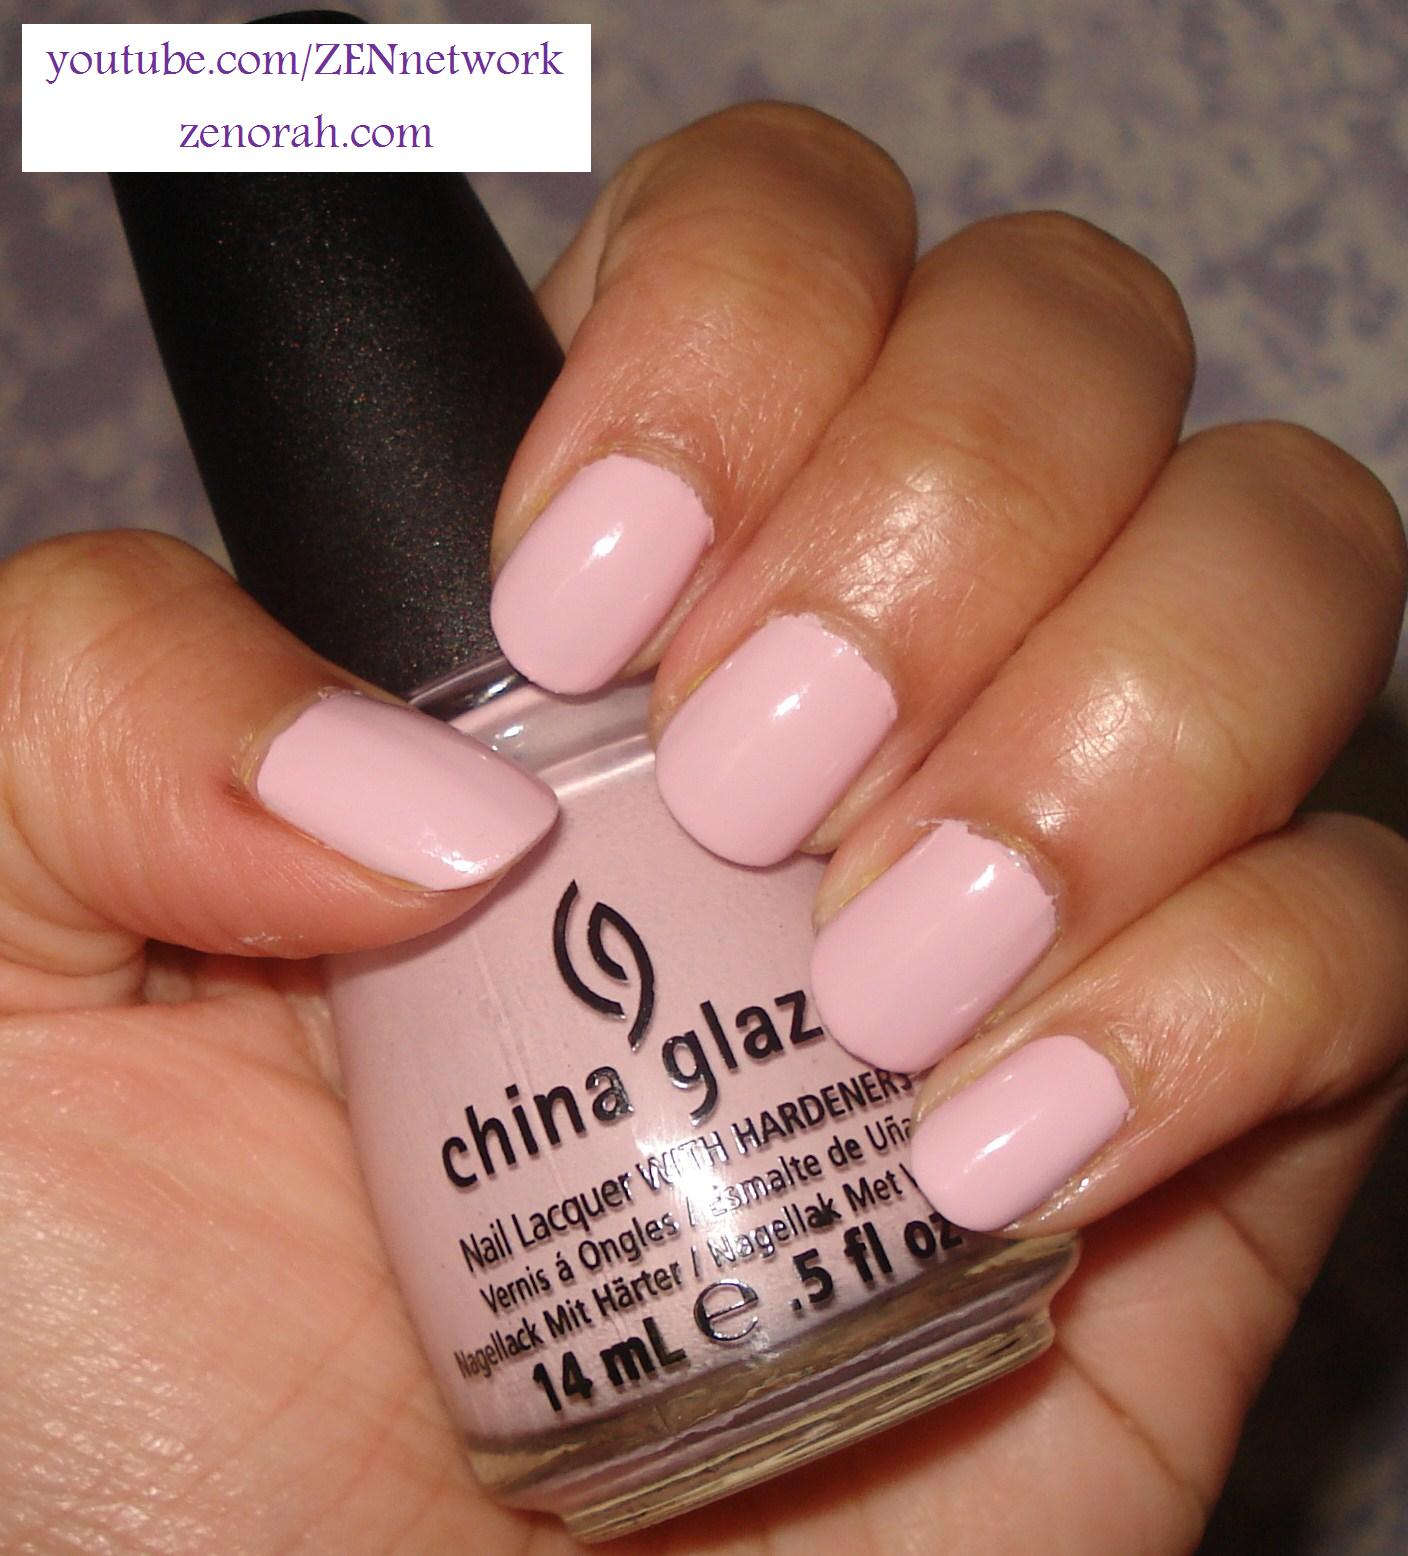 toe nail hint sugar a of tip lacquer nude light with polish classic tac pink lustre lilac